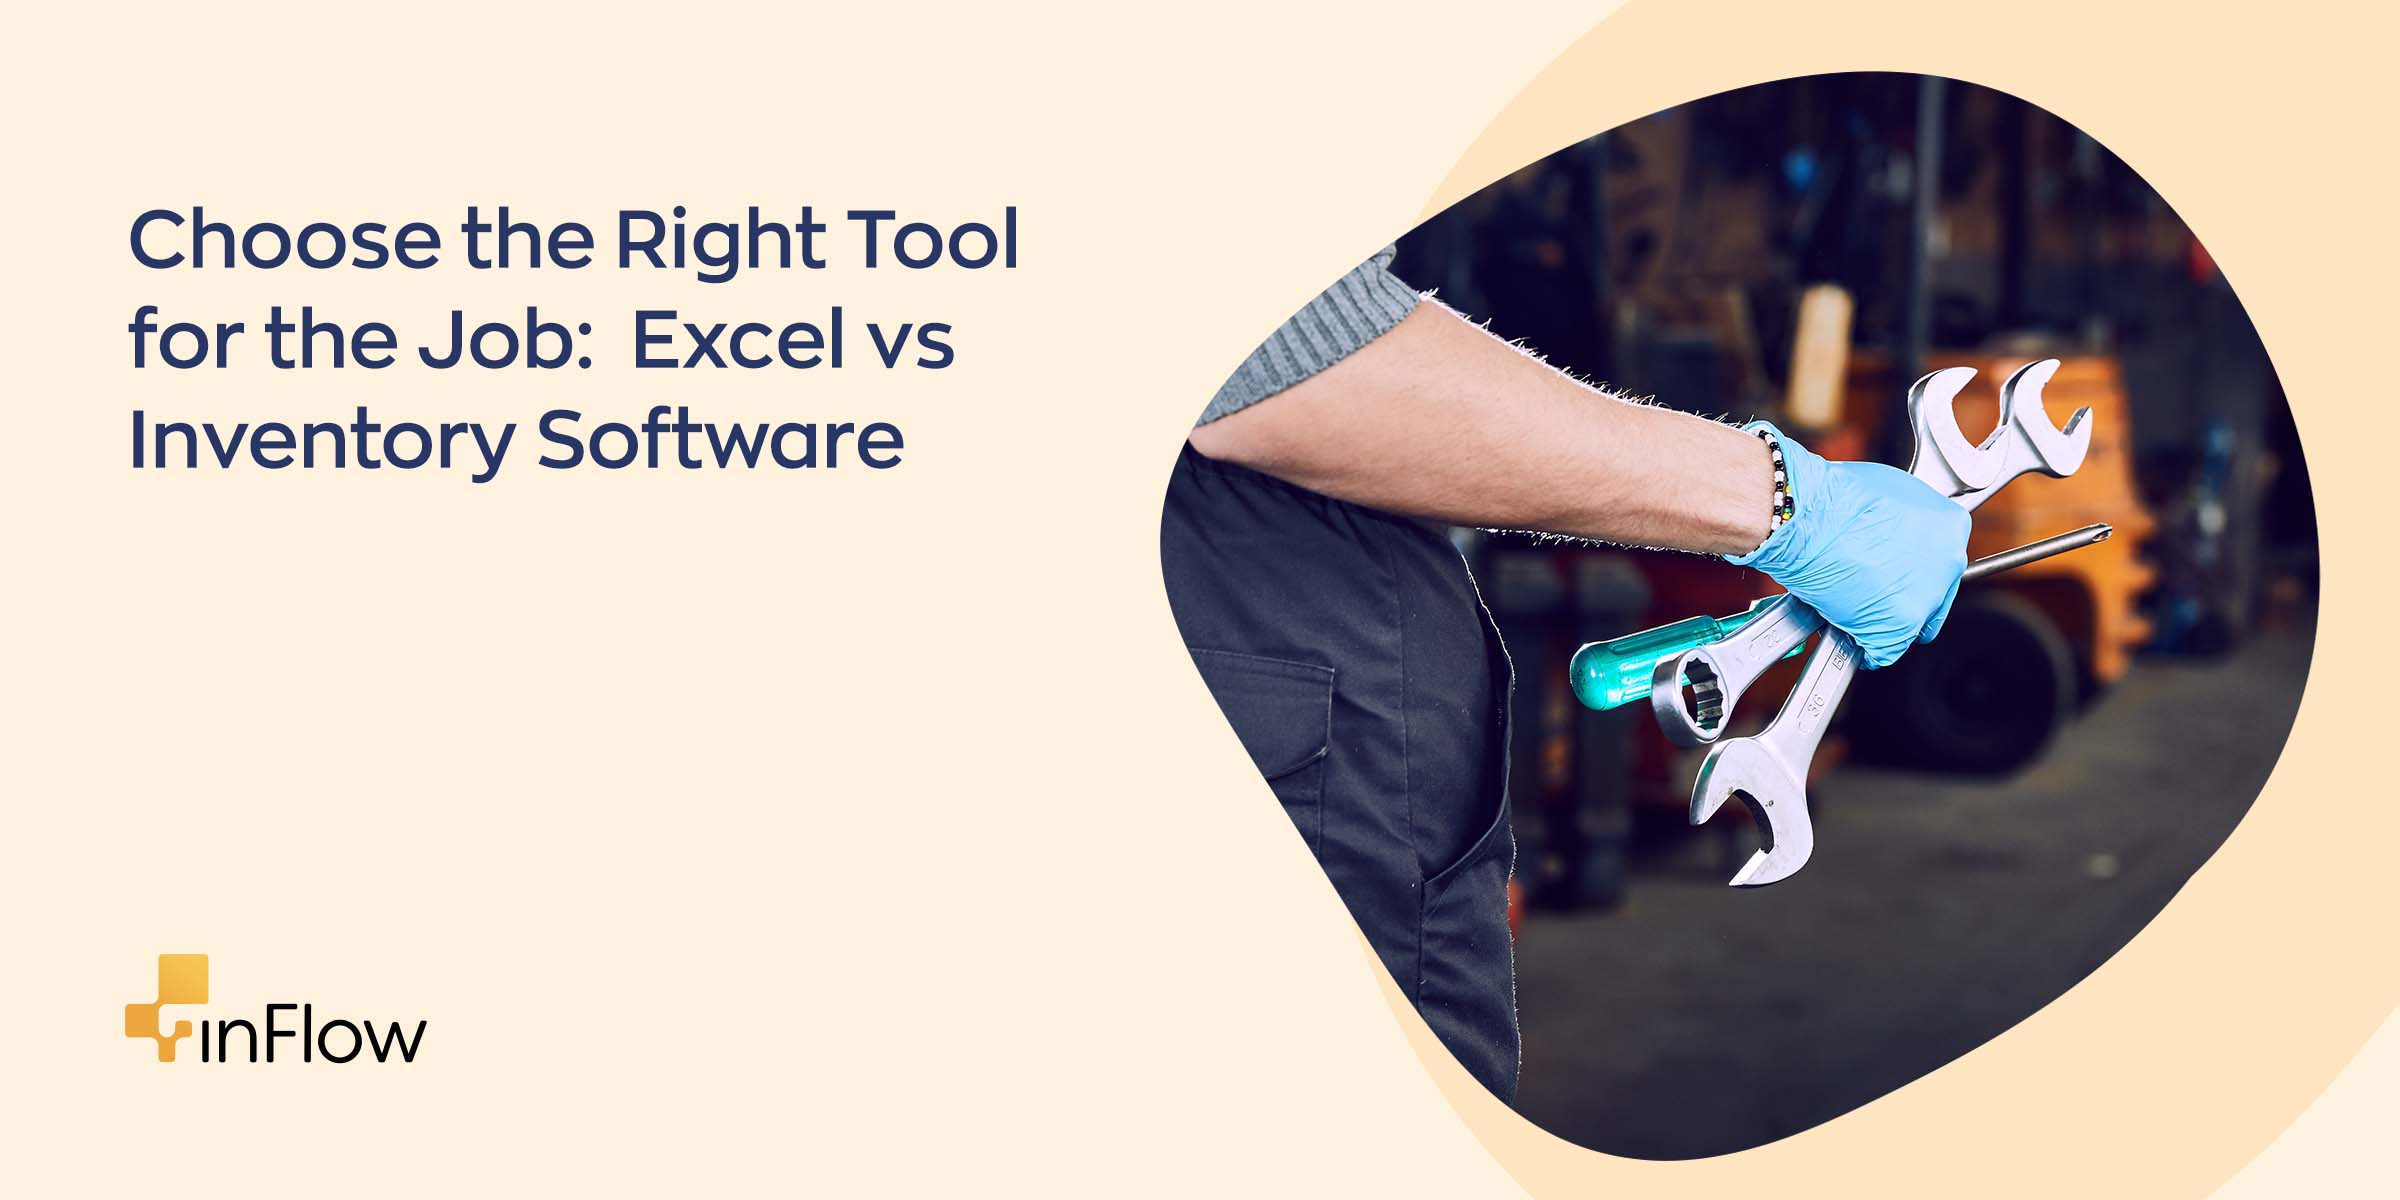 Choose the Right Tool for the Job: Excel vs Inventory Software